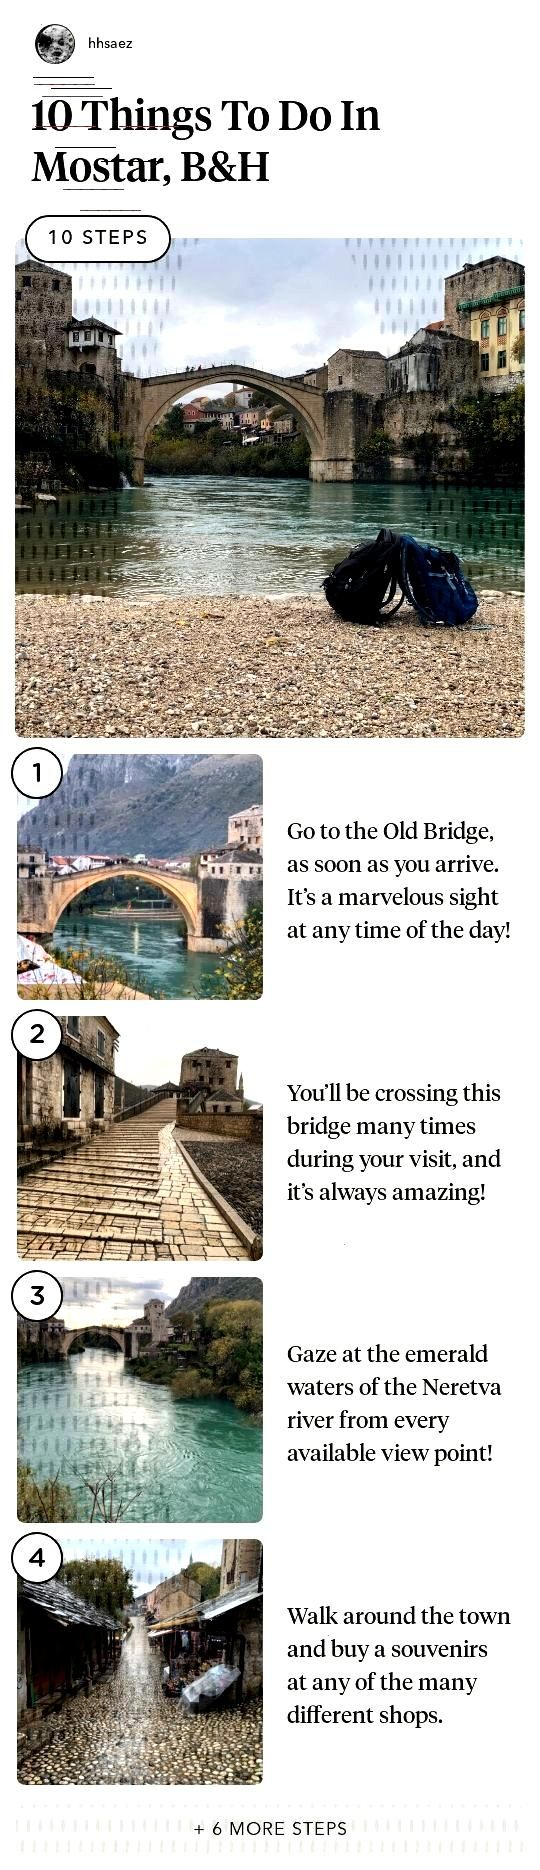 10 Things To Do In Mostar, BampH 10 Things To Do In Mostar, BampH in 10 steps